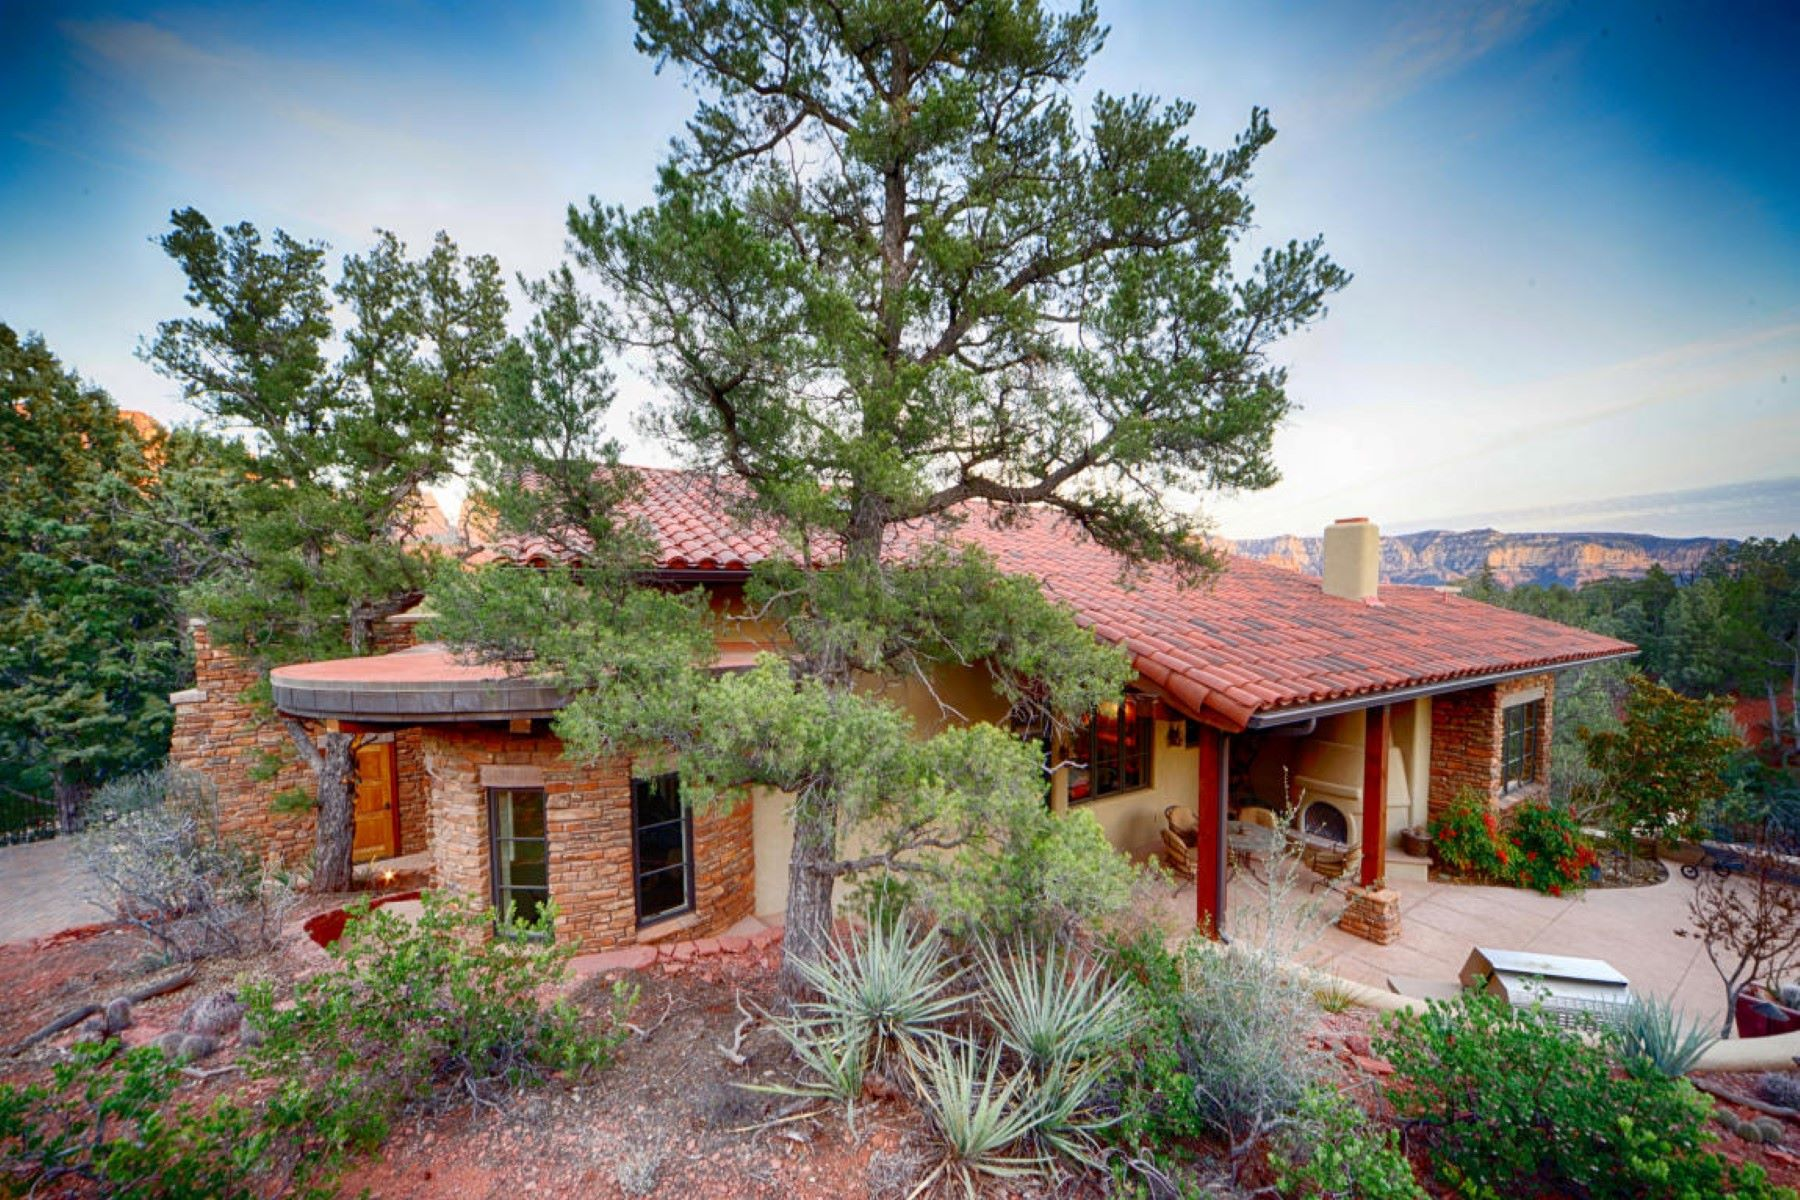 Single Family Home for Sale at Custom Southwest Masterpiece 400 Little Scout Rd Sedona, Arizona 86336 United States